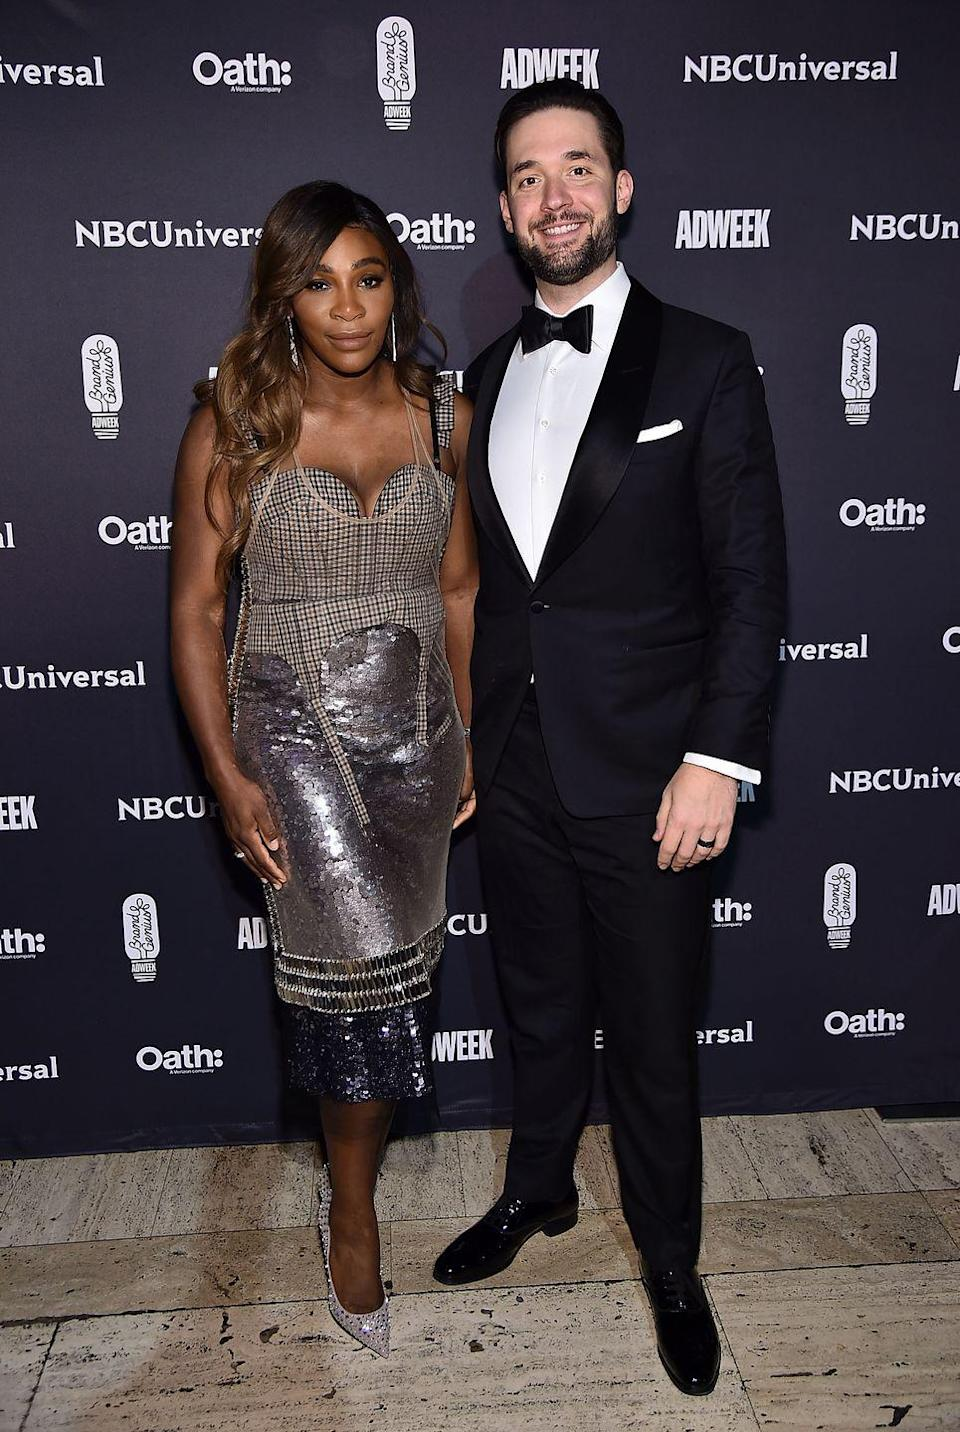 "<p>Tennis champion Serena Williams and husband Alexis Ohanian <a href=""https://www.womenshealthmag.com/life/a19931901/serena-williams-newborn-daughter-photos/"" rel=""nofollow noopener"" target=""_blank"" data-ylk=""slk:welcomed daughter Alexis Olympia"" class=""link rapid-noclick-resp"">welcomed daughter Alexis Olympia</a> in September 2017. In a piece for <a href=""https://www.cnn.com/2018/02/20/opinions/protect-mother-pregnancy-williams-opinion/index.html"" rel=""nofollow noopener"" target=""_blank"" data-ylk=""slk:CNN.com"" class=""link rapid-noclick-resp"">CNN.com</a>, Serena wrote of <a href=""https://www.womenshealthmag.com/life/a19993482/serena-williams-postpartum-complications/"" rel=""nofollow noopener"" target=""_blank"" data-ylk=""slk:her traumatic birth experience"" class=""link rapid-noclick-resp"">her traumatic birth experience</a>, saying she ""almost died"" following an emergency C-section.</p>"